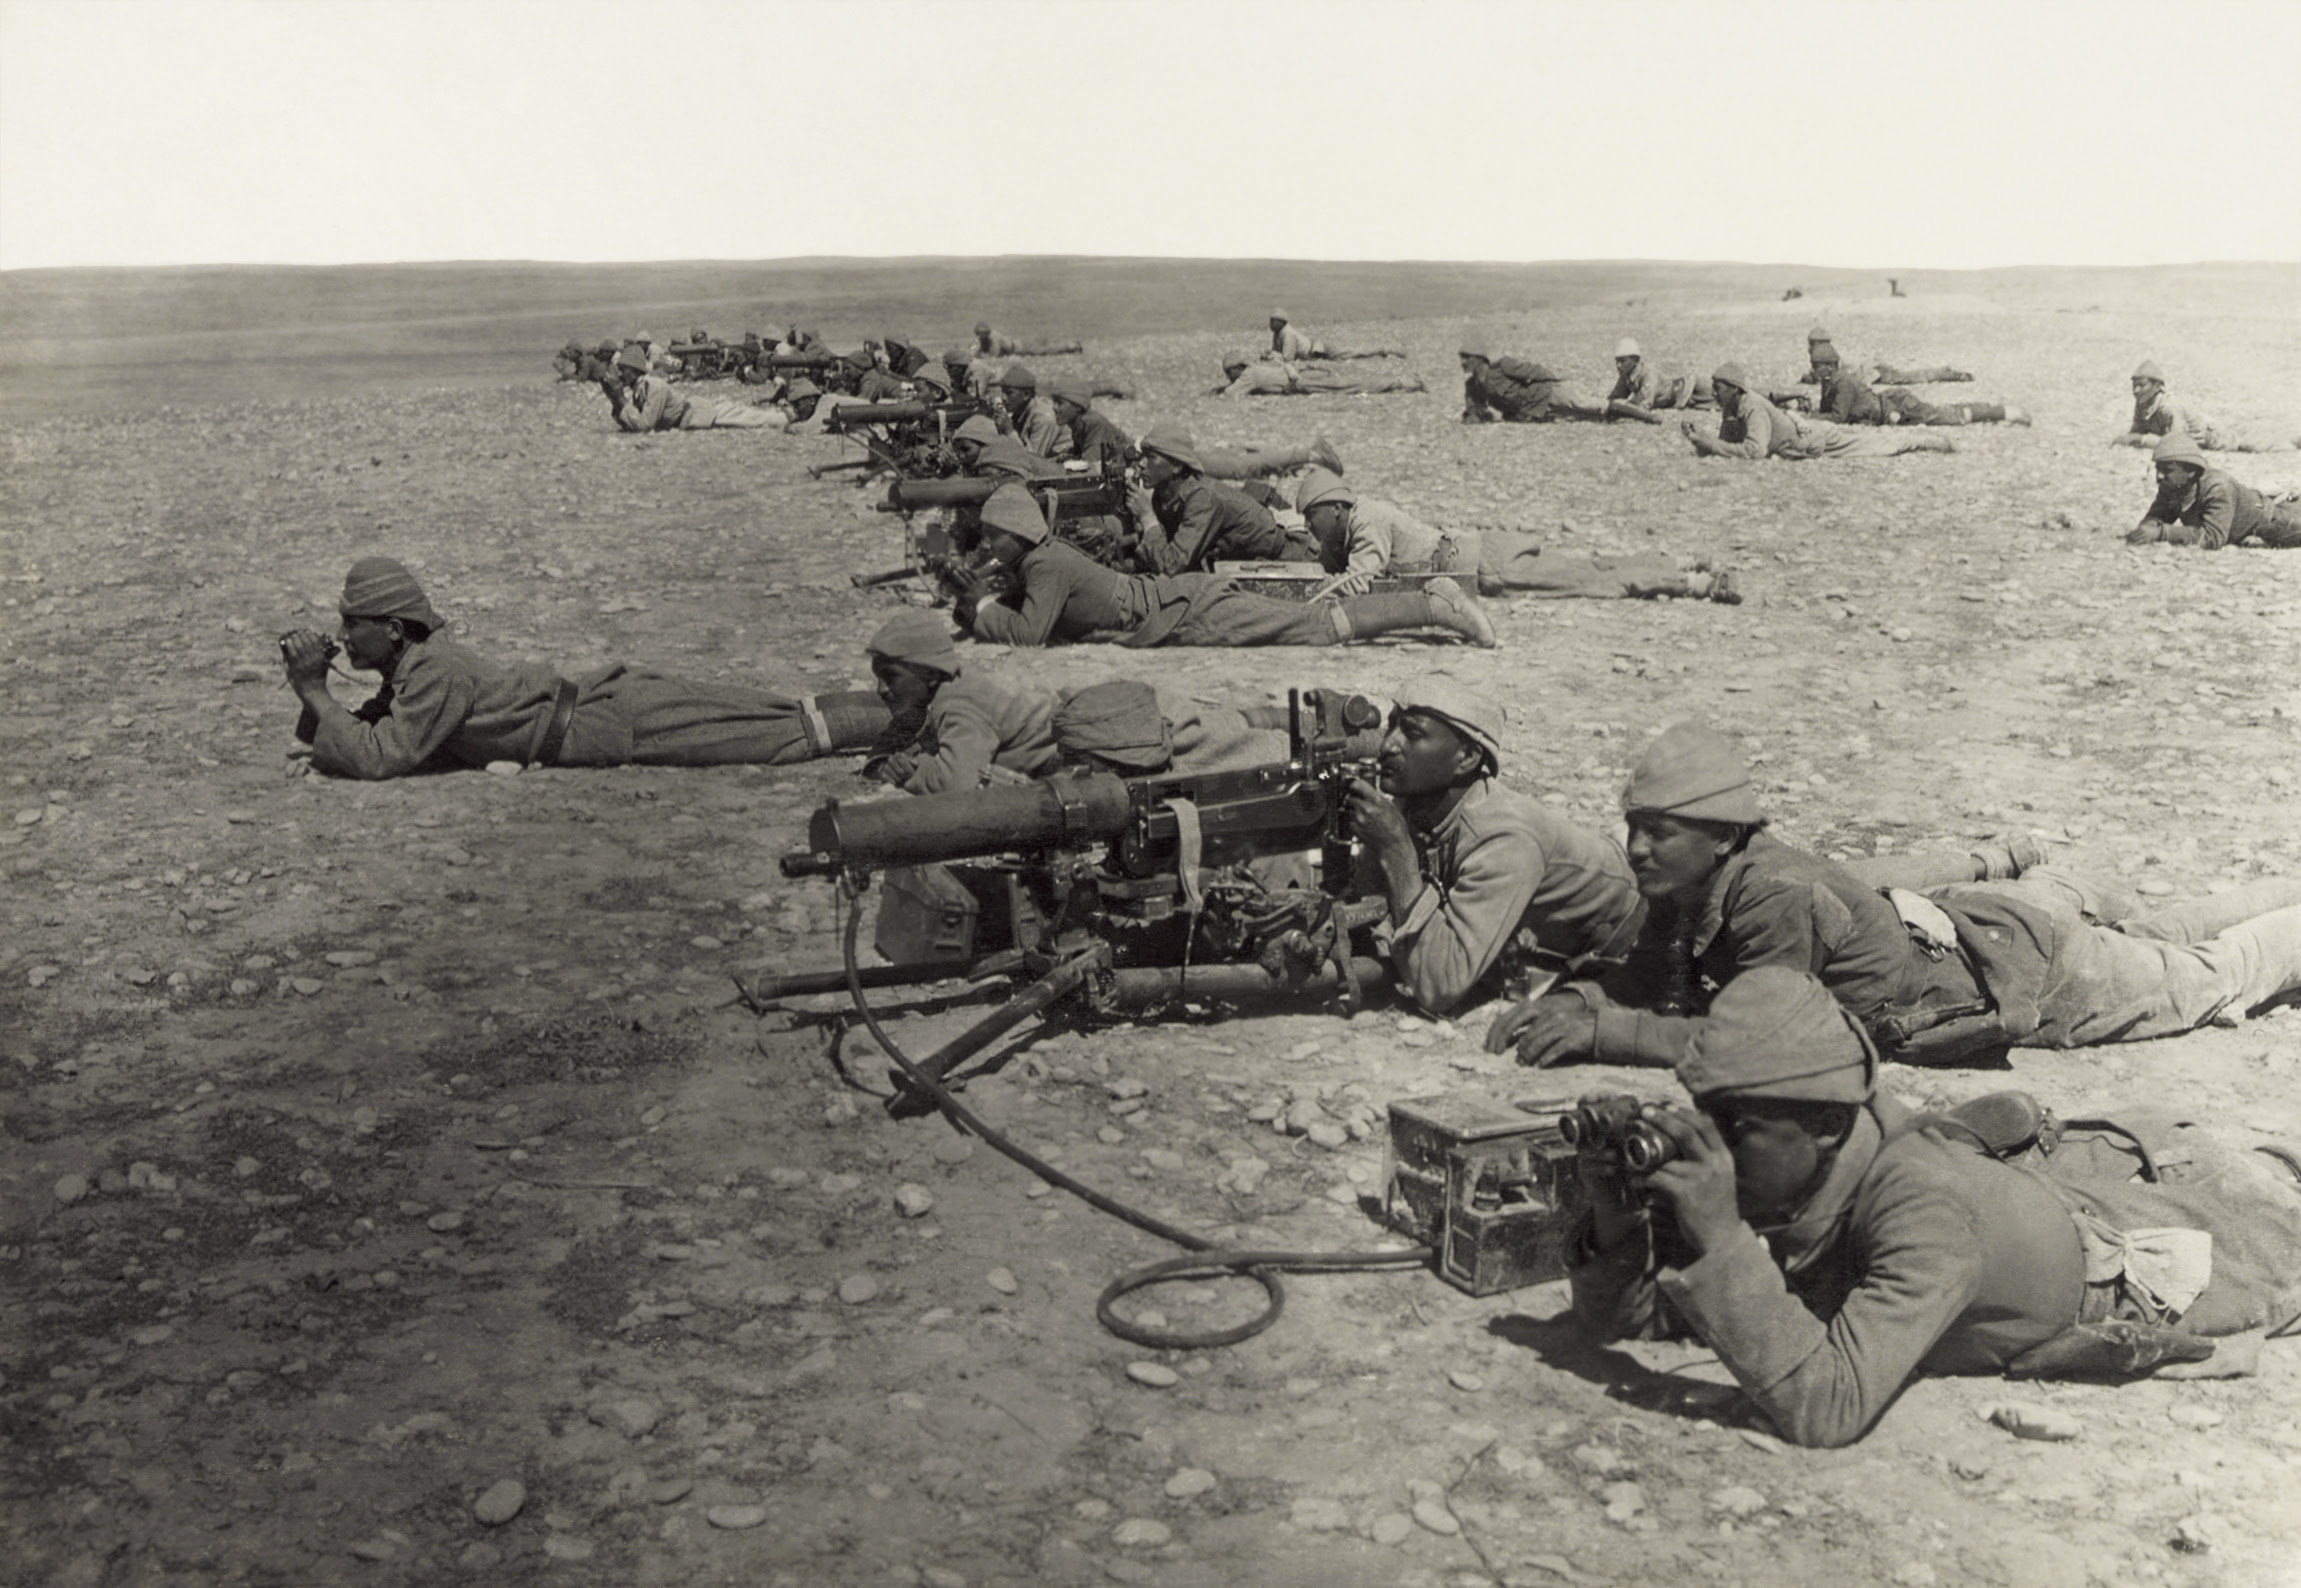 Turkish machine gunners, Battle of Gaza, April 1917